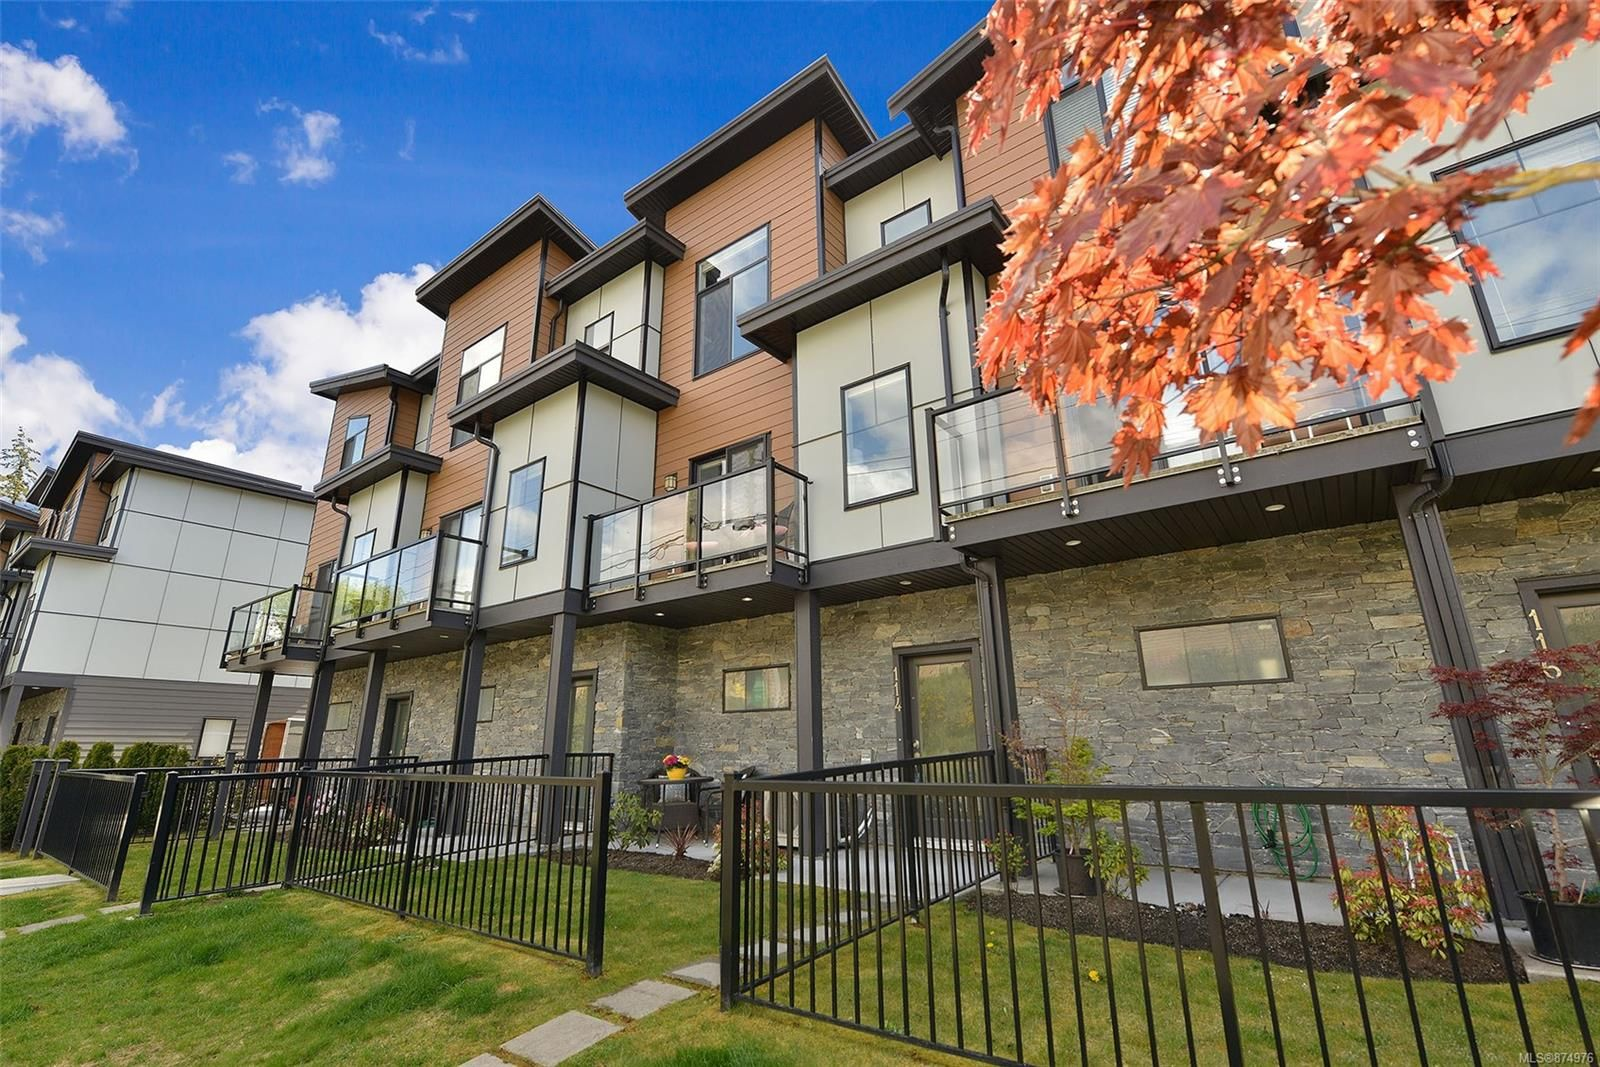 Main Photo: 114 687 STRANDLUND Ave in : La Langford Proper Row/Townhouse for sale (Langford)  : MLS®# 874976